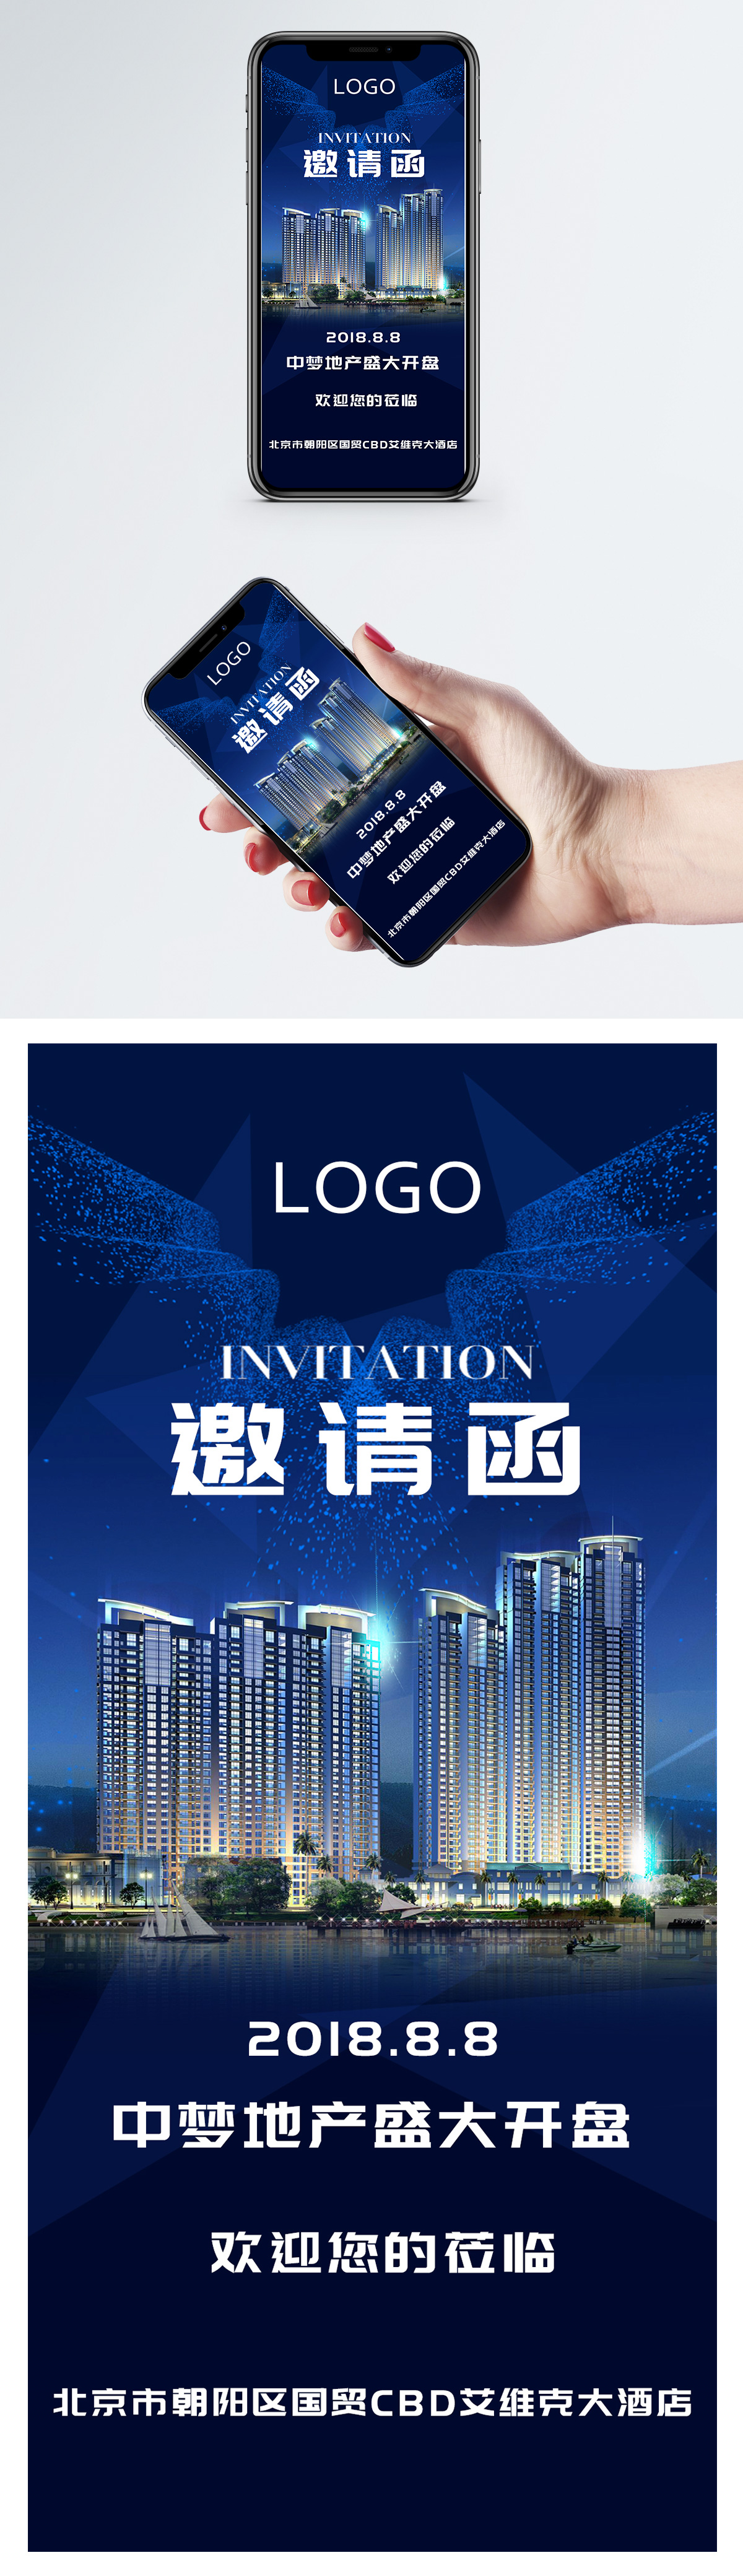 invitation letter of real estate opening image picture